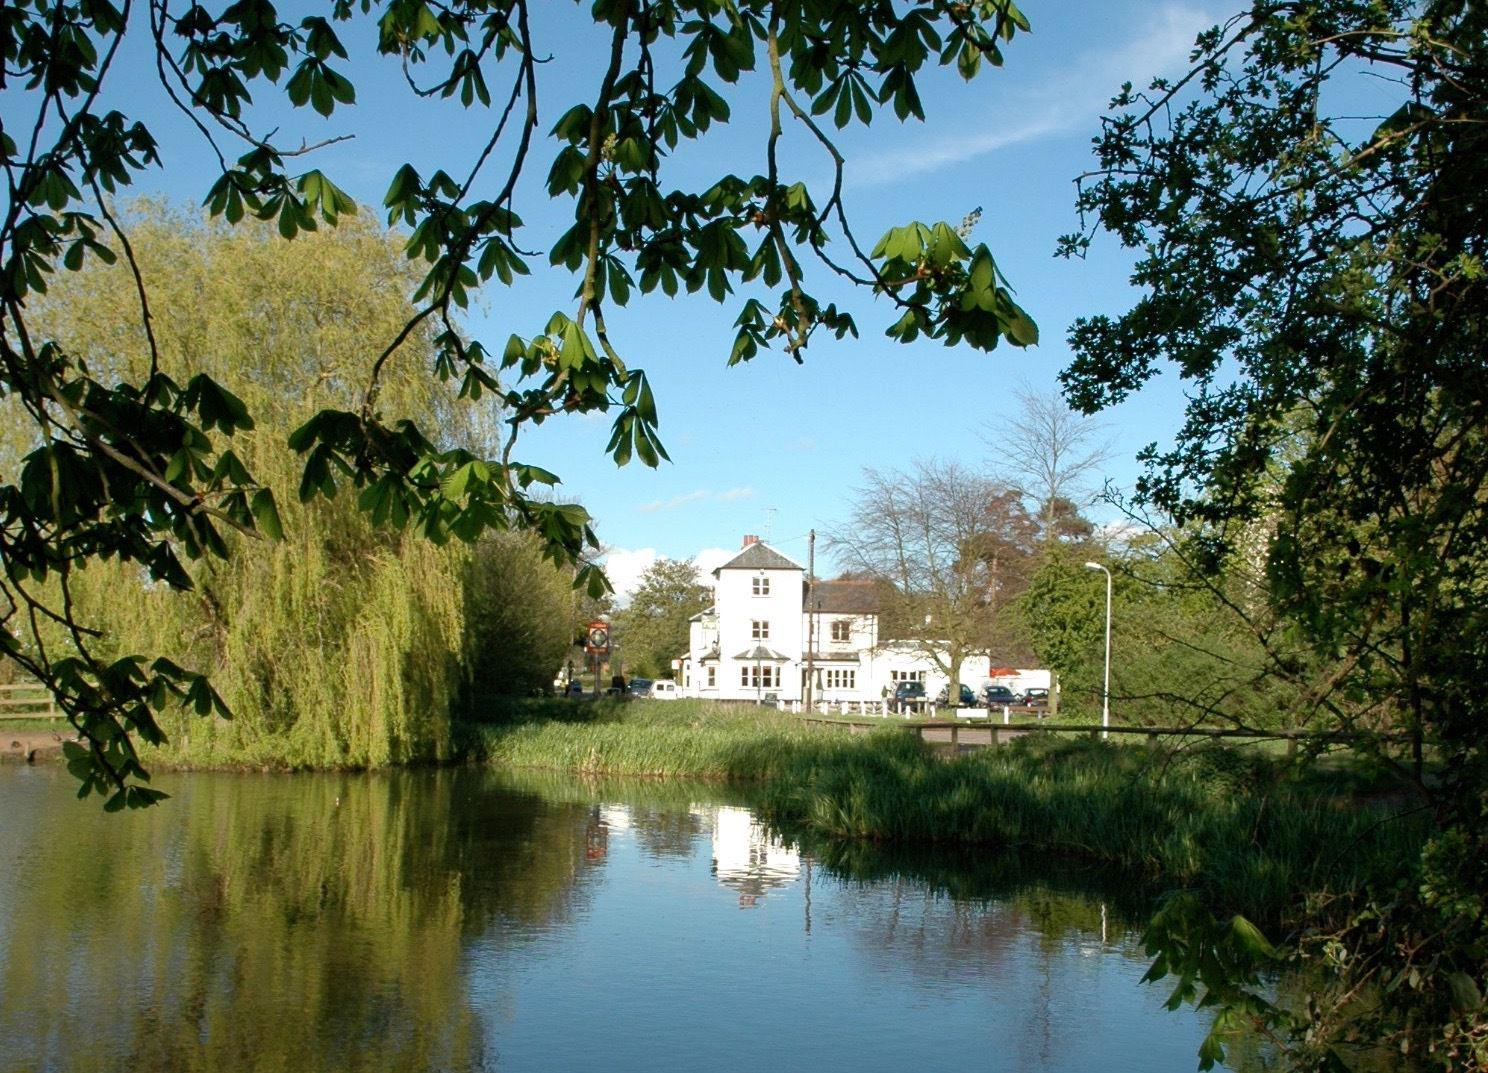 Hotels, Cottages, B&Bs & Glamping in Hertfordshire